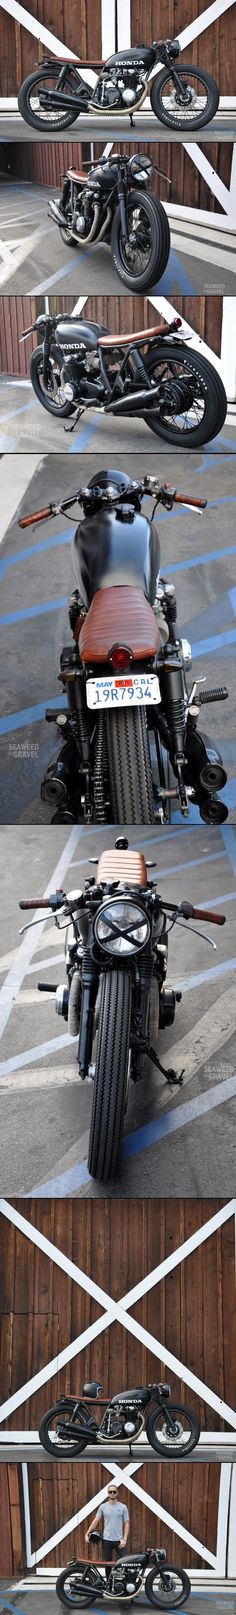 cb550 custom build by sg builder brady young